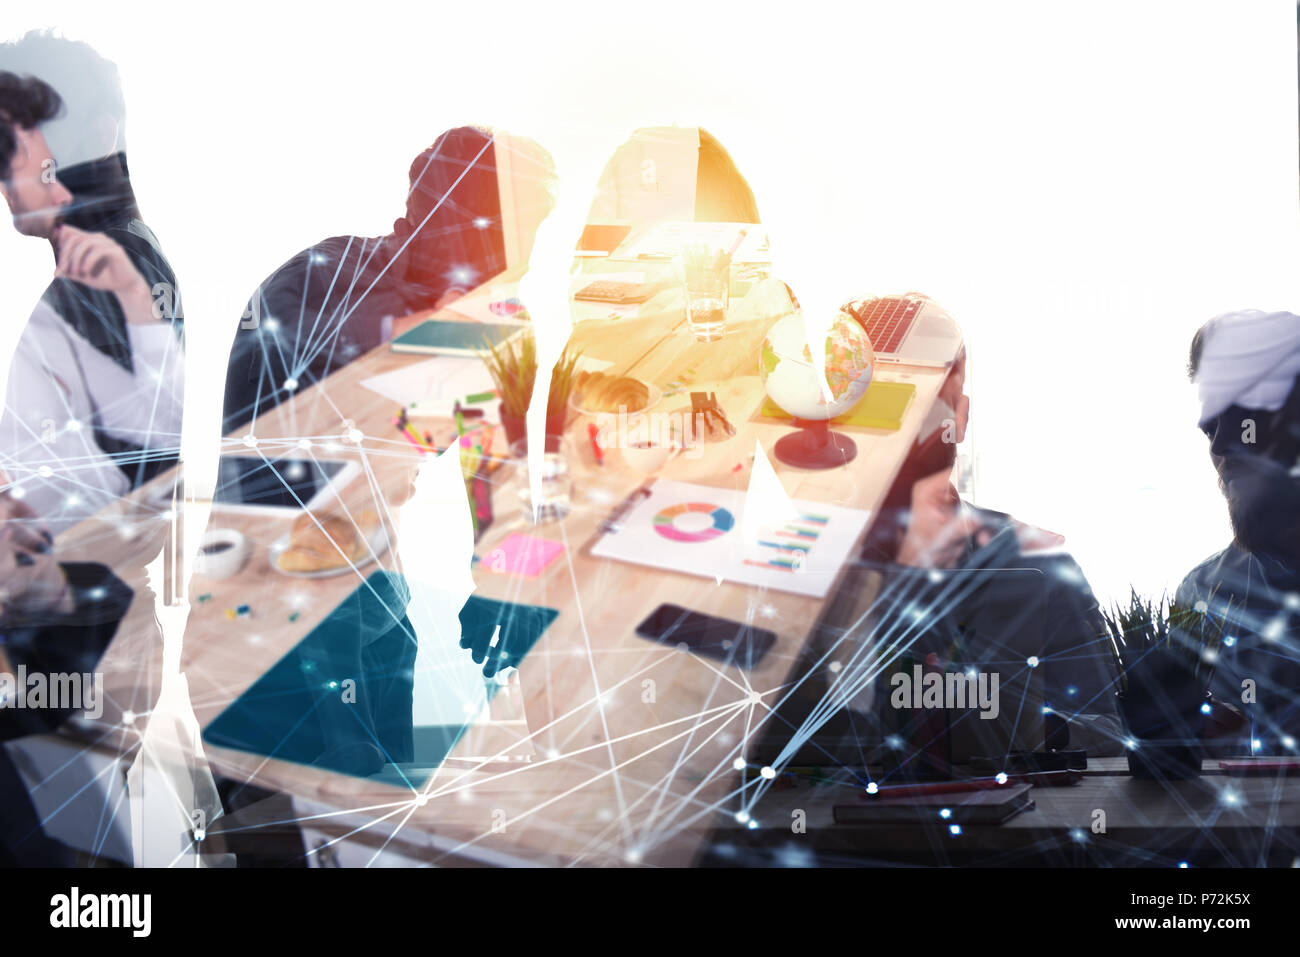 Business people work together in office with internet network effects. Concept of teamwork and partnership. double exposure - Stock Image